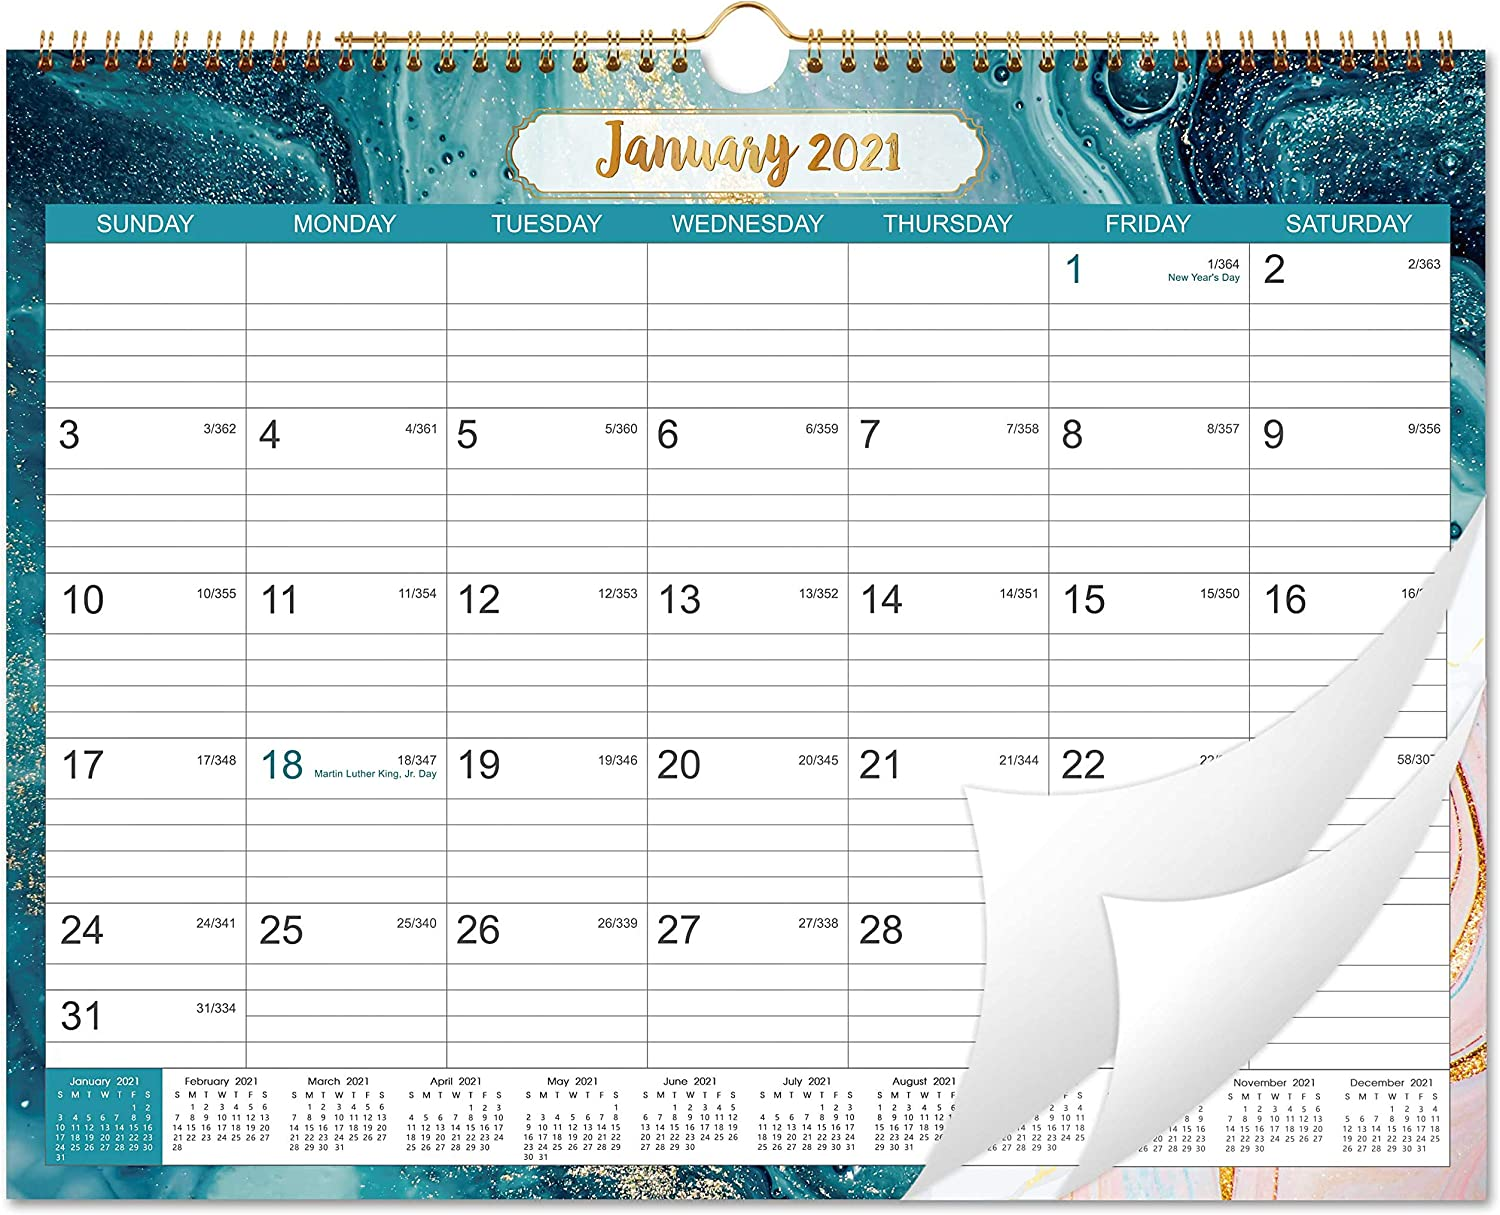 """2021 Calendar - Wall Calendar 2021 with Julian Date, Jan 2021 - Dec 2021, Twin-Wire-Bound, 14.76""""x 11.6"""", Thick Paper Perfect for Organizing & Planning, 6 Different Background Patterns"""